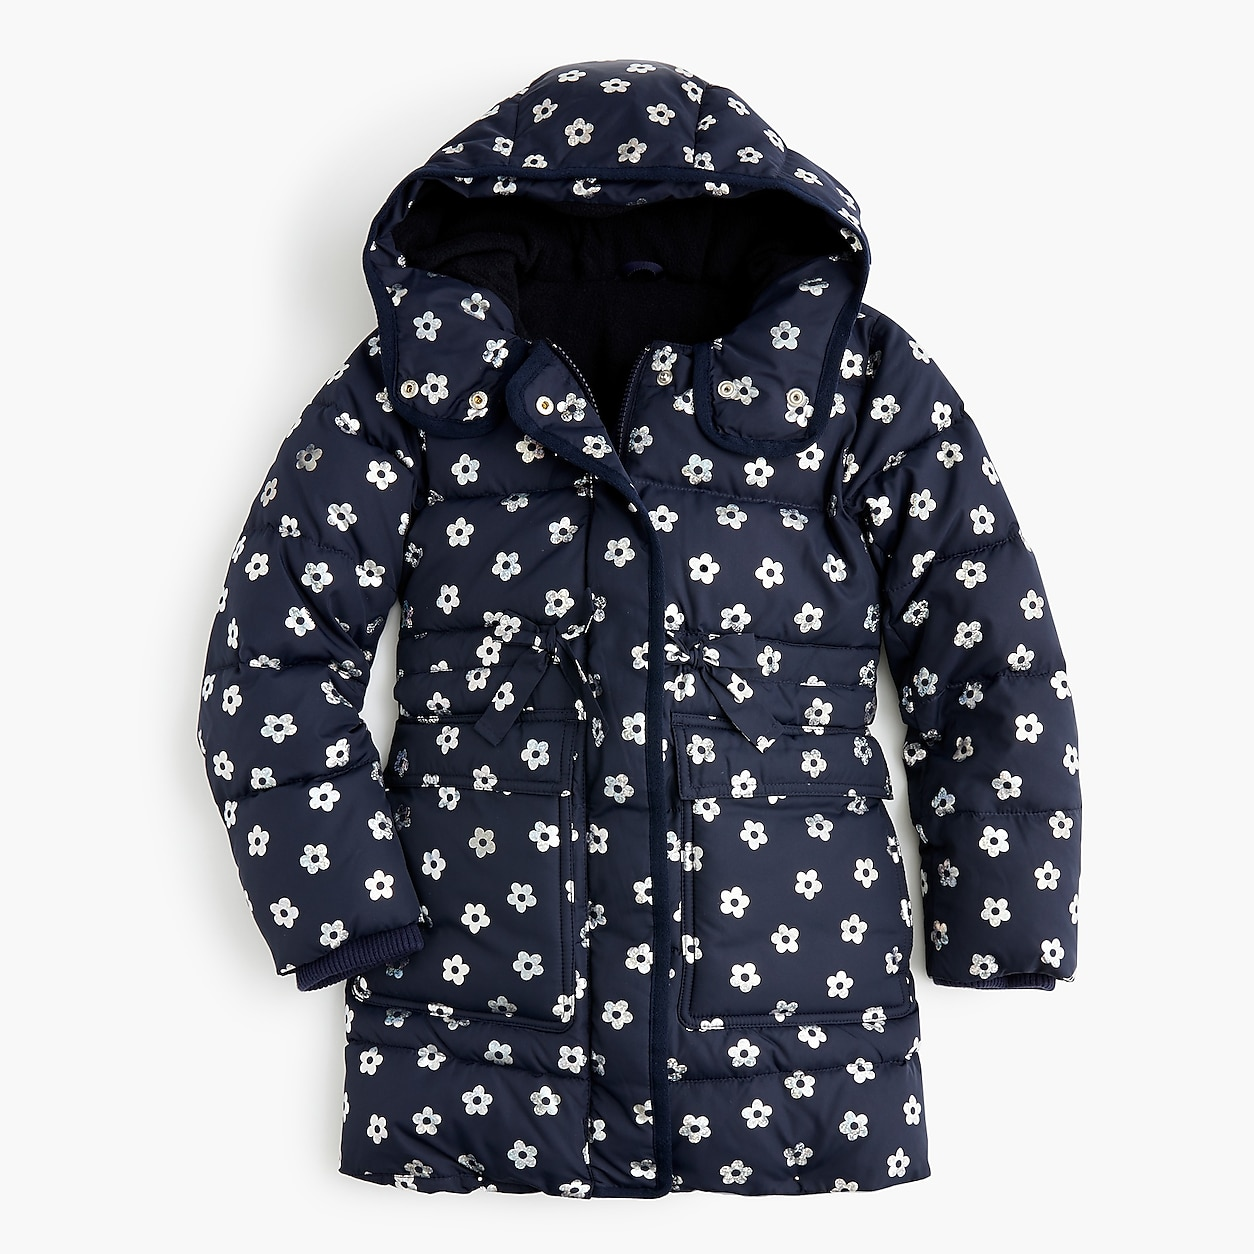 2fc50caa140b crewcuts Long Floral Puffer Coat With Eco-Friendly Primaloft ...